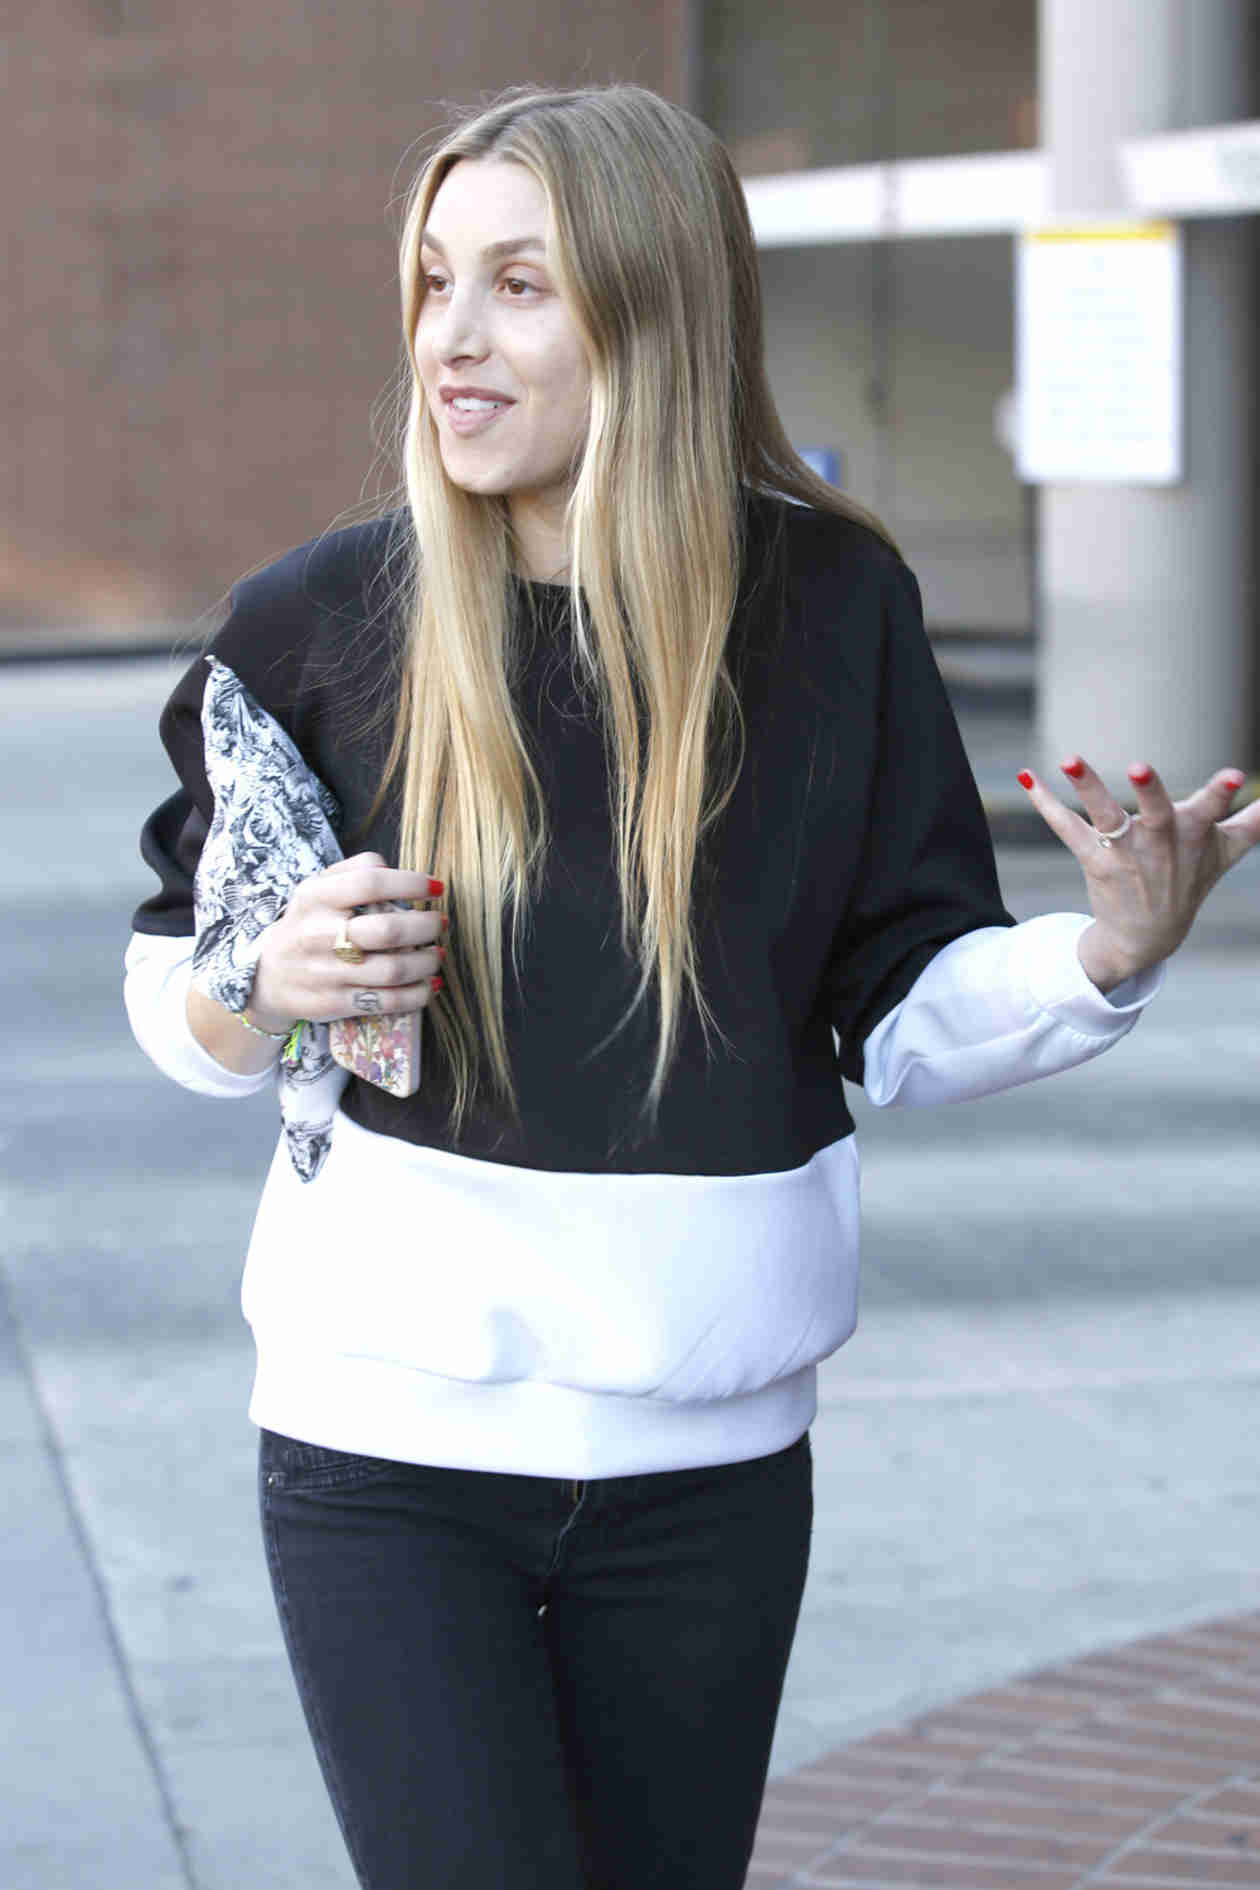 Whitney Port Goes Makeup-Free While Showing Off Engagement Ring in Beverly Hills (PHOTOS)